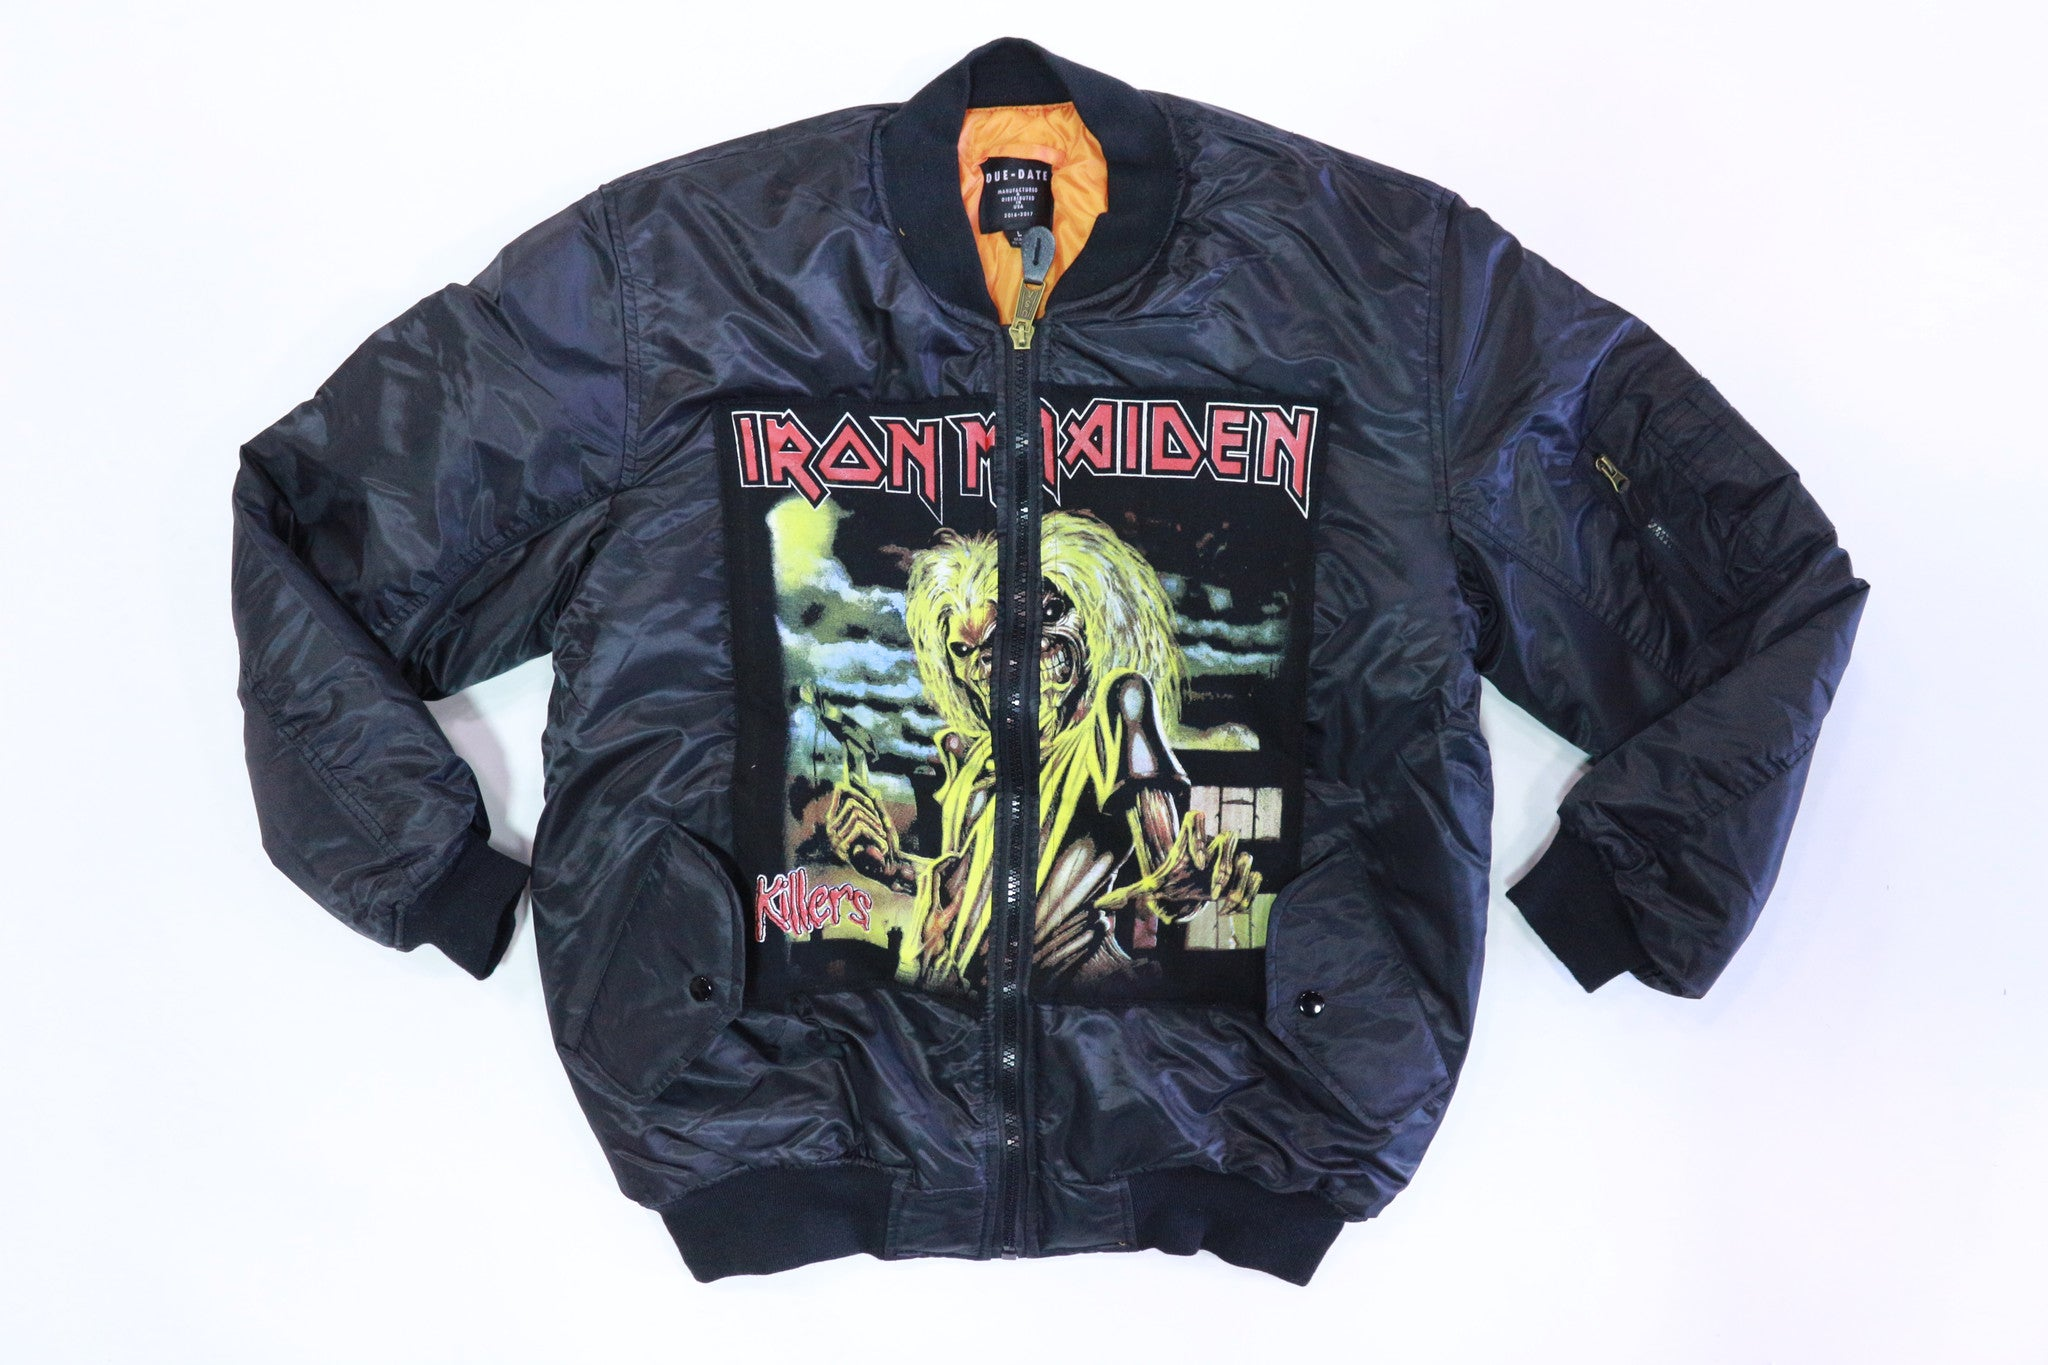 DUE-DATE Iron Maiden Bomber Jacket